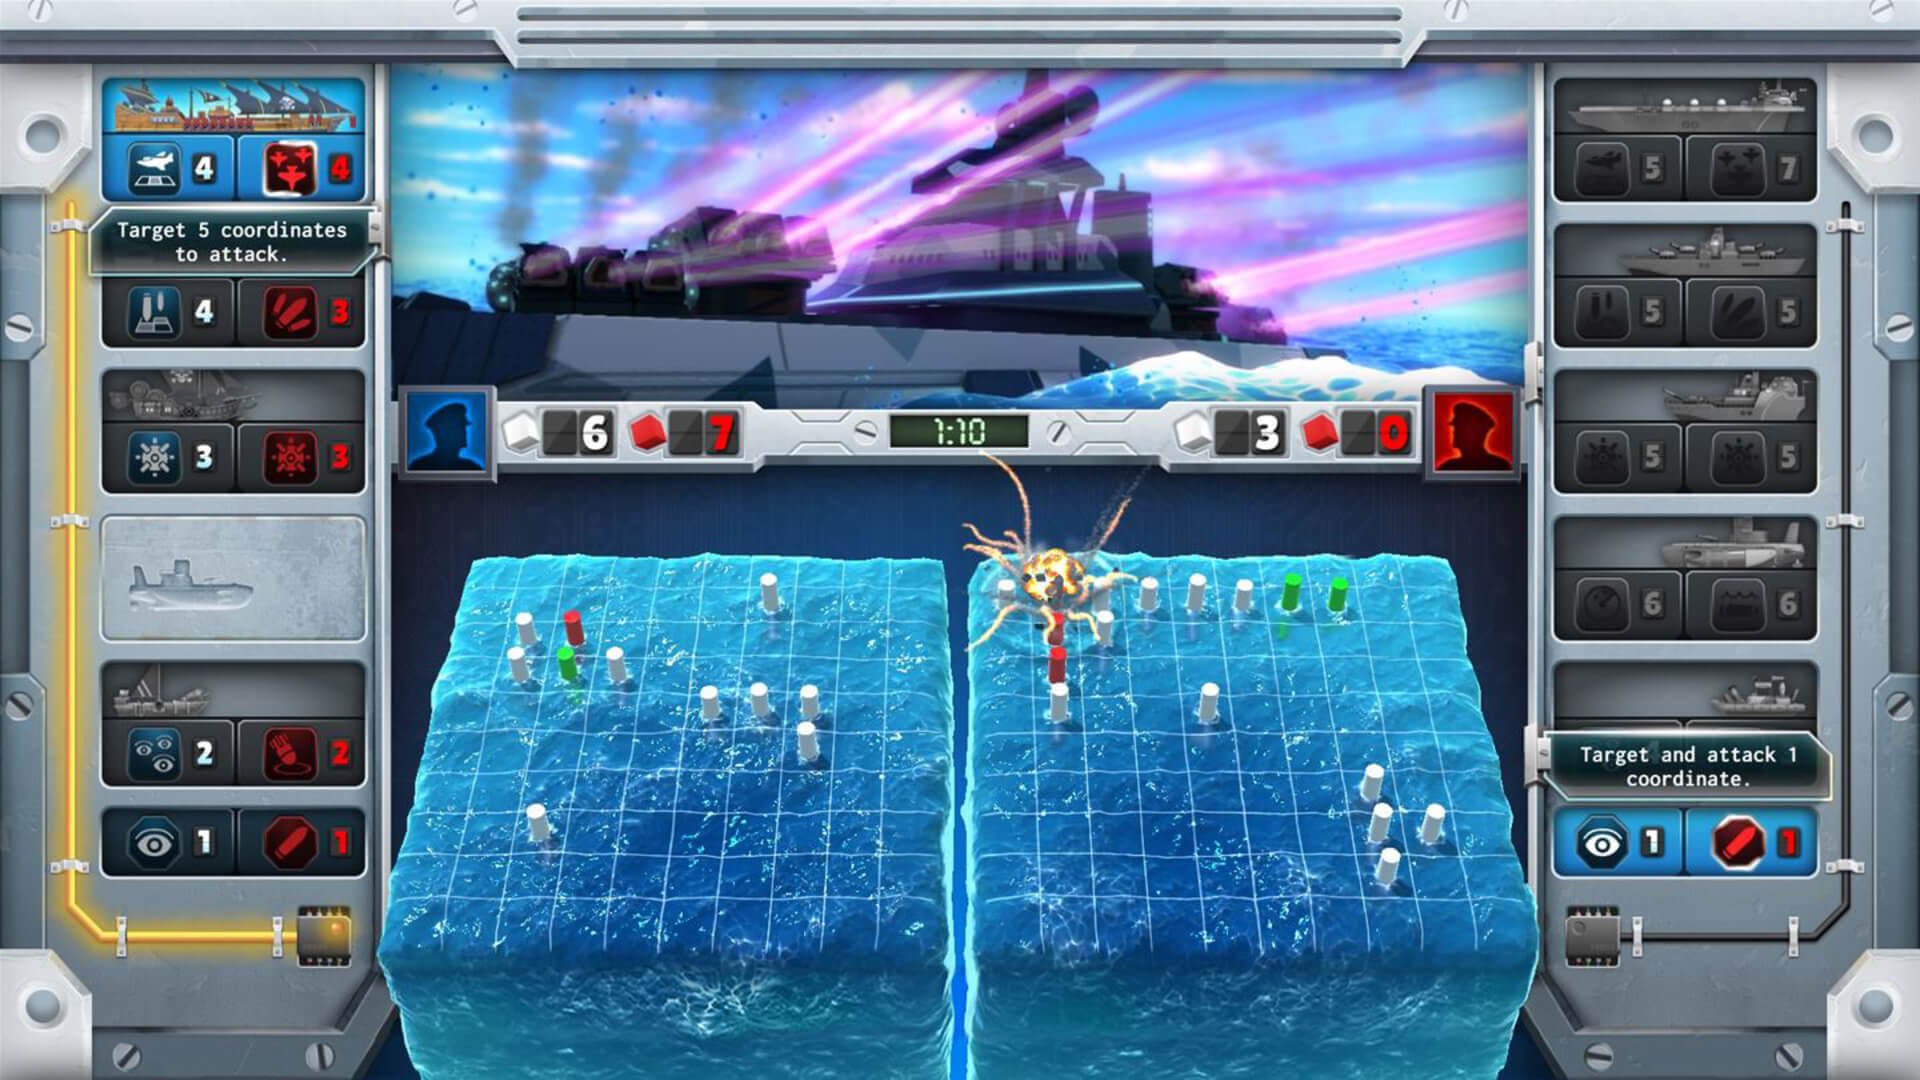 Battleship For Ps4 Xb1 Xbxs Ps5 Reviews Opencritic